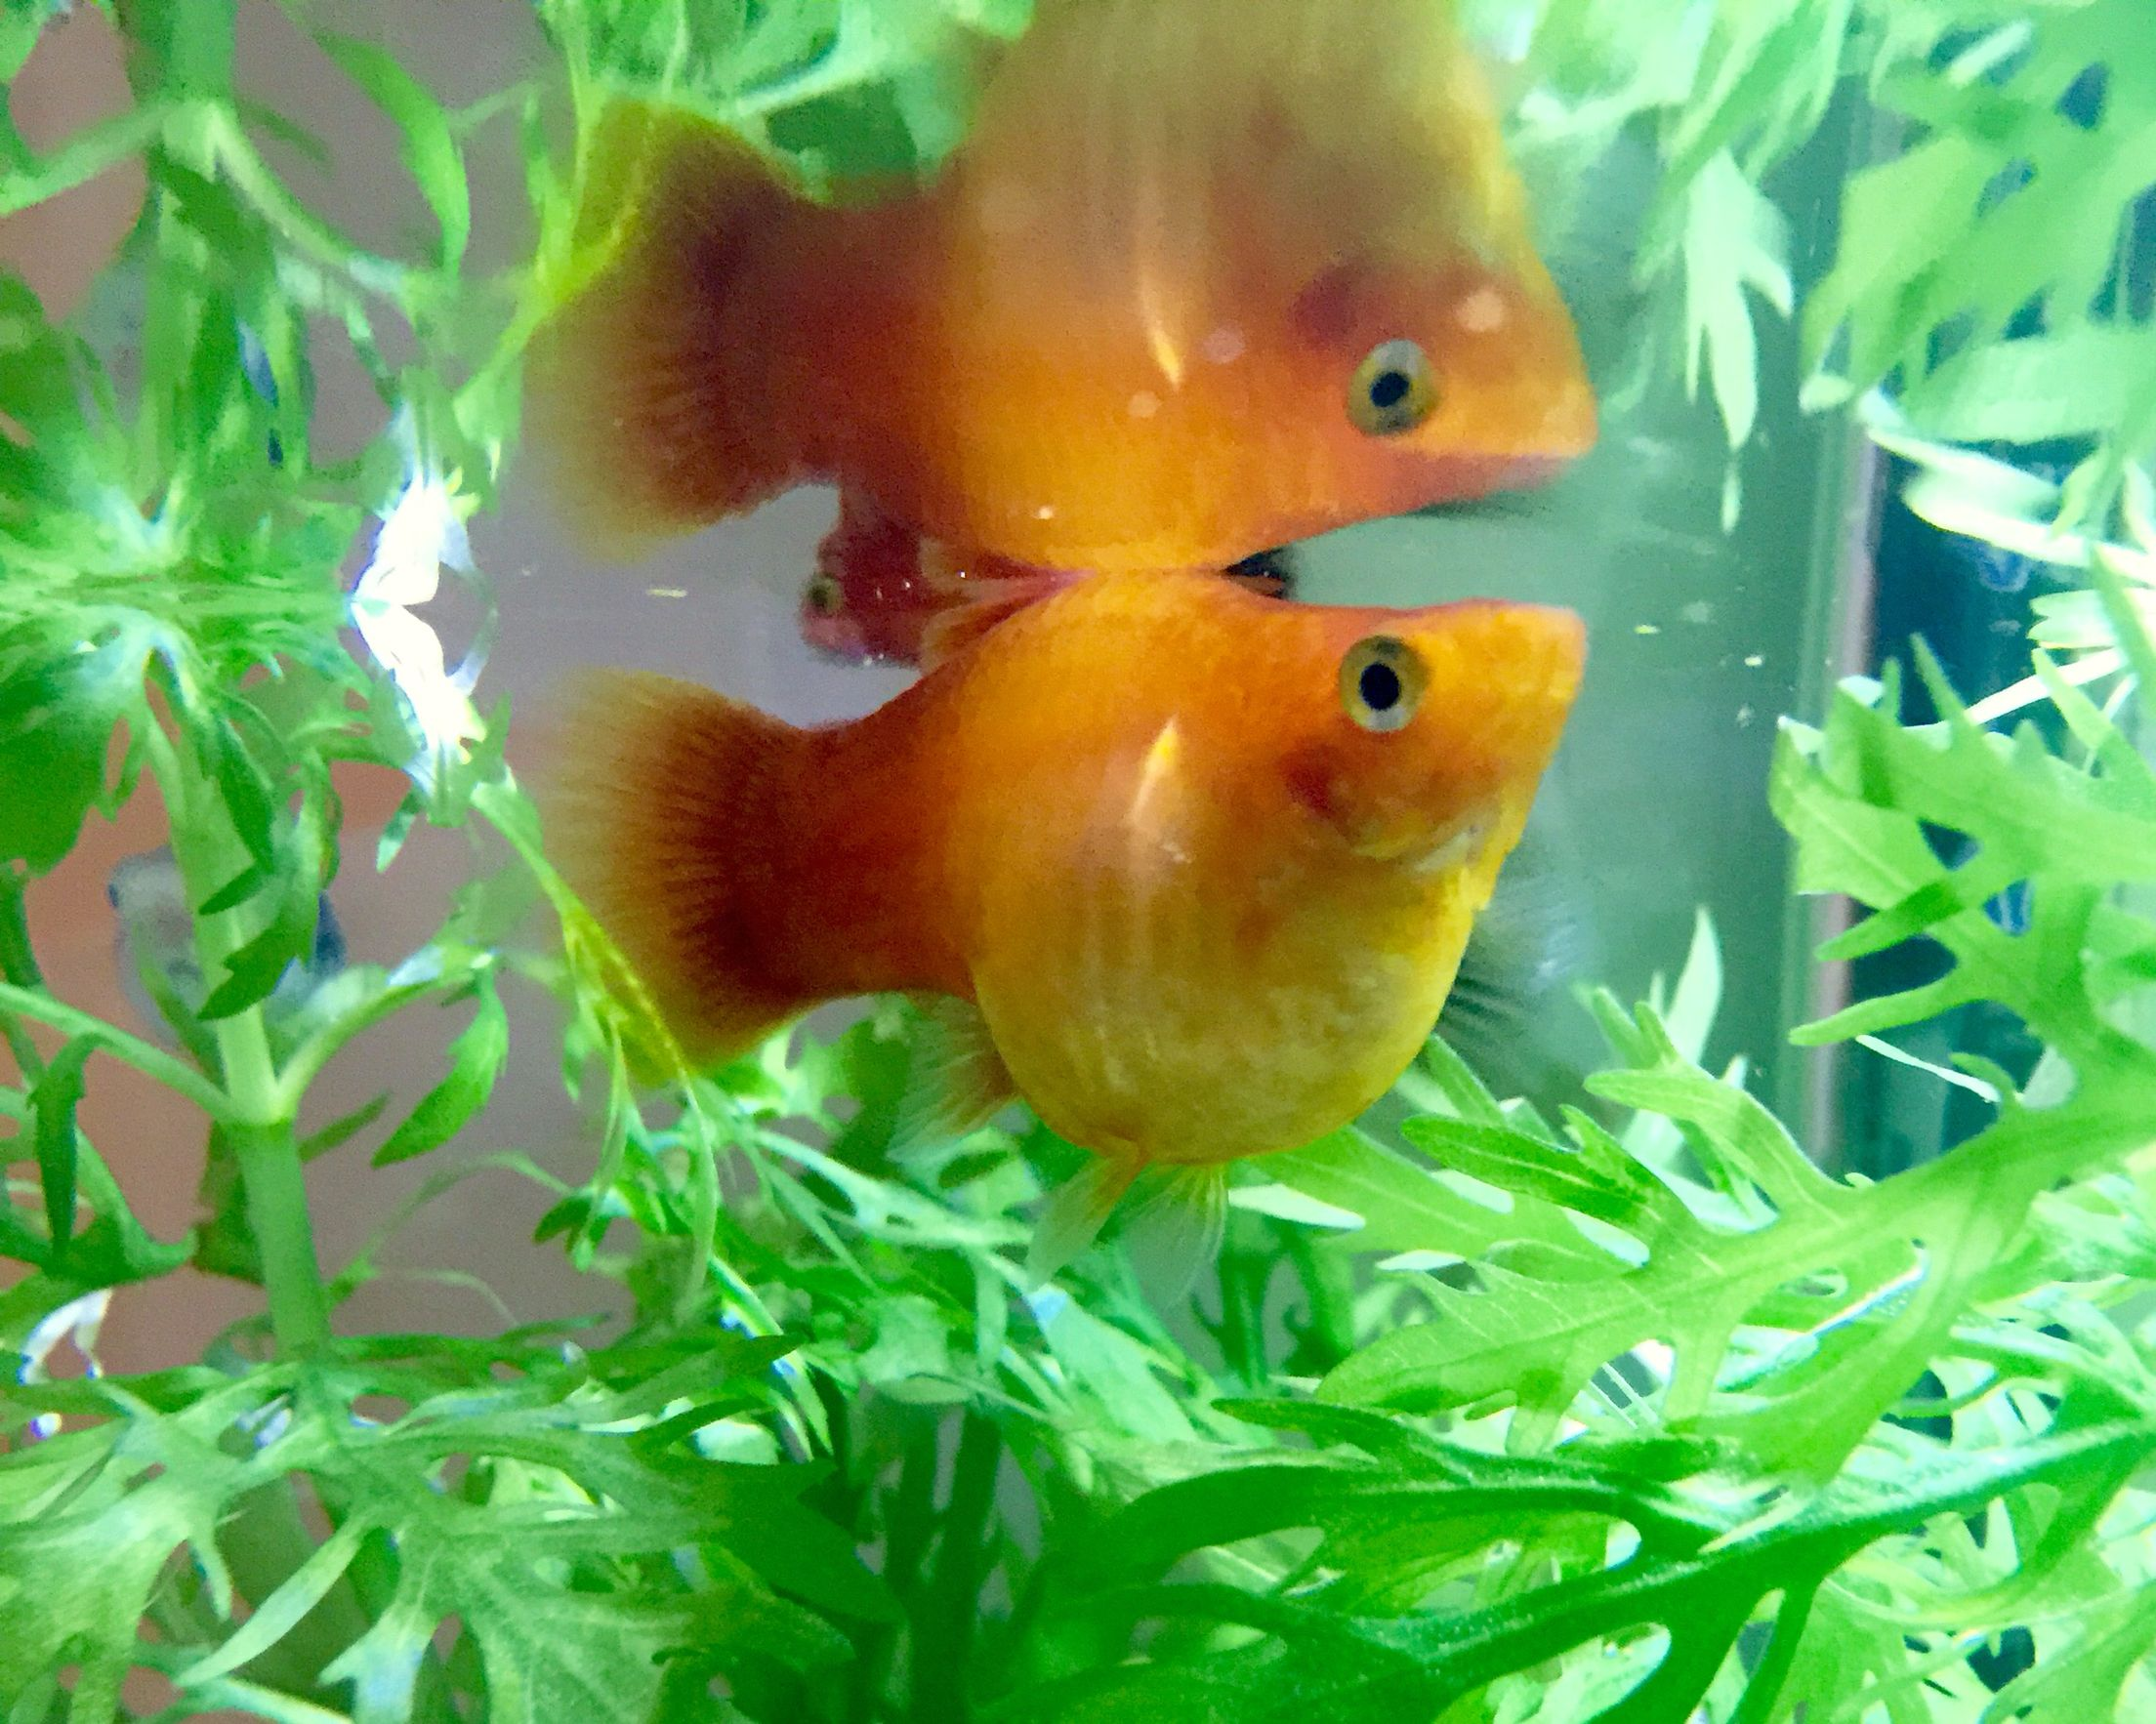 Freshwater aquarium fish easy to breed - Humongous Platy Belly Livebearer Fish Aquarium Decoration Caves For Breeding Cichlids And Hiding Fry Pinterest